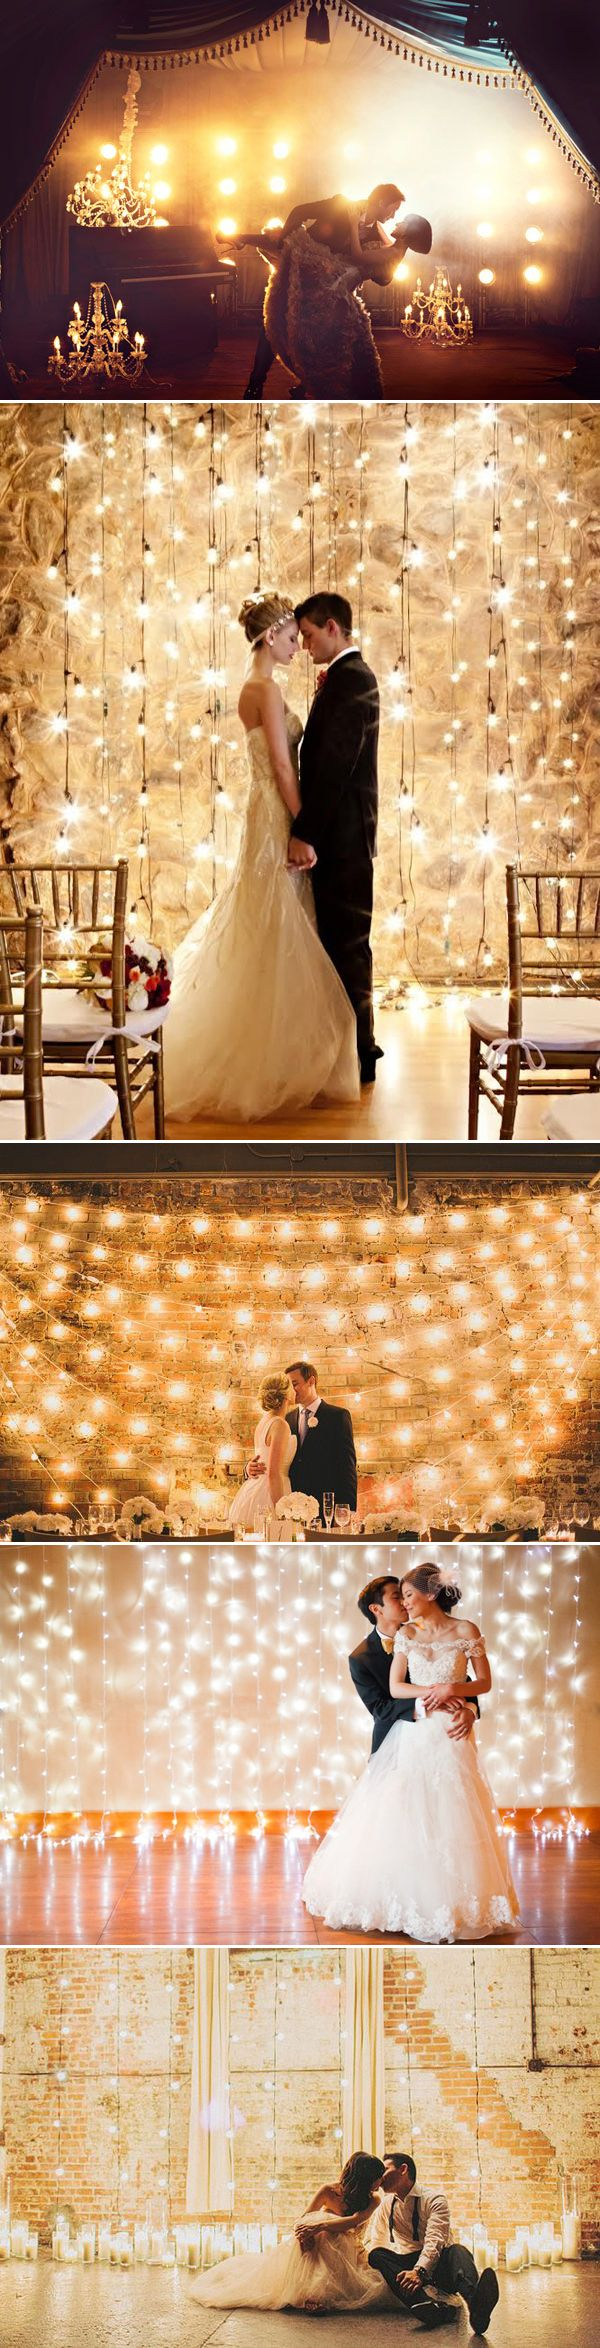 Magical Lighting Wedding Backdrop / http://www.deerpearlflowers.com/53-super-creative-wedding-photo-backdrops/